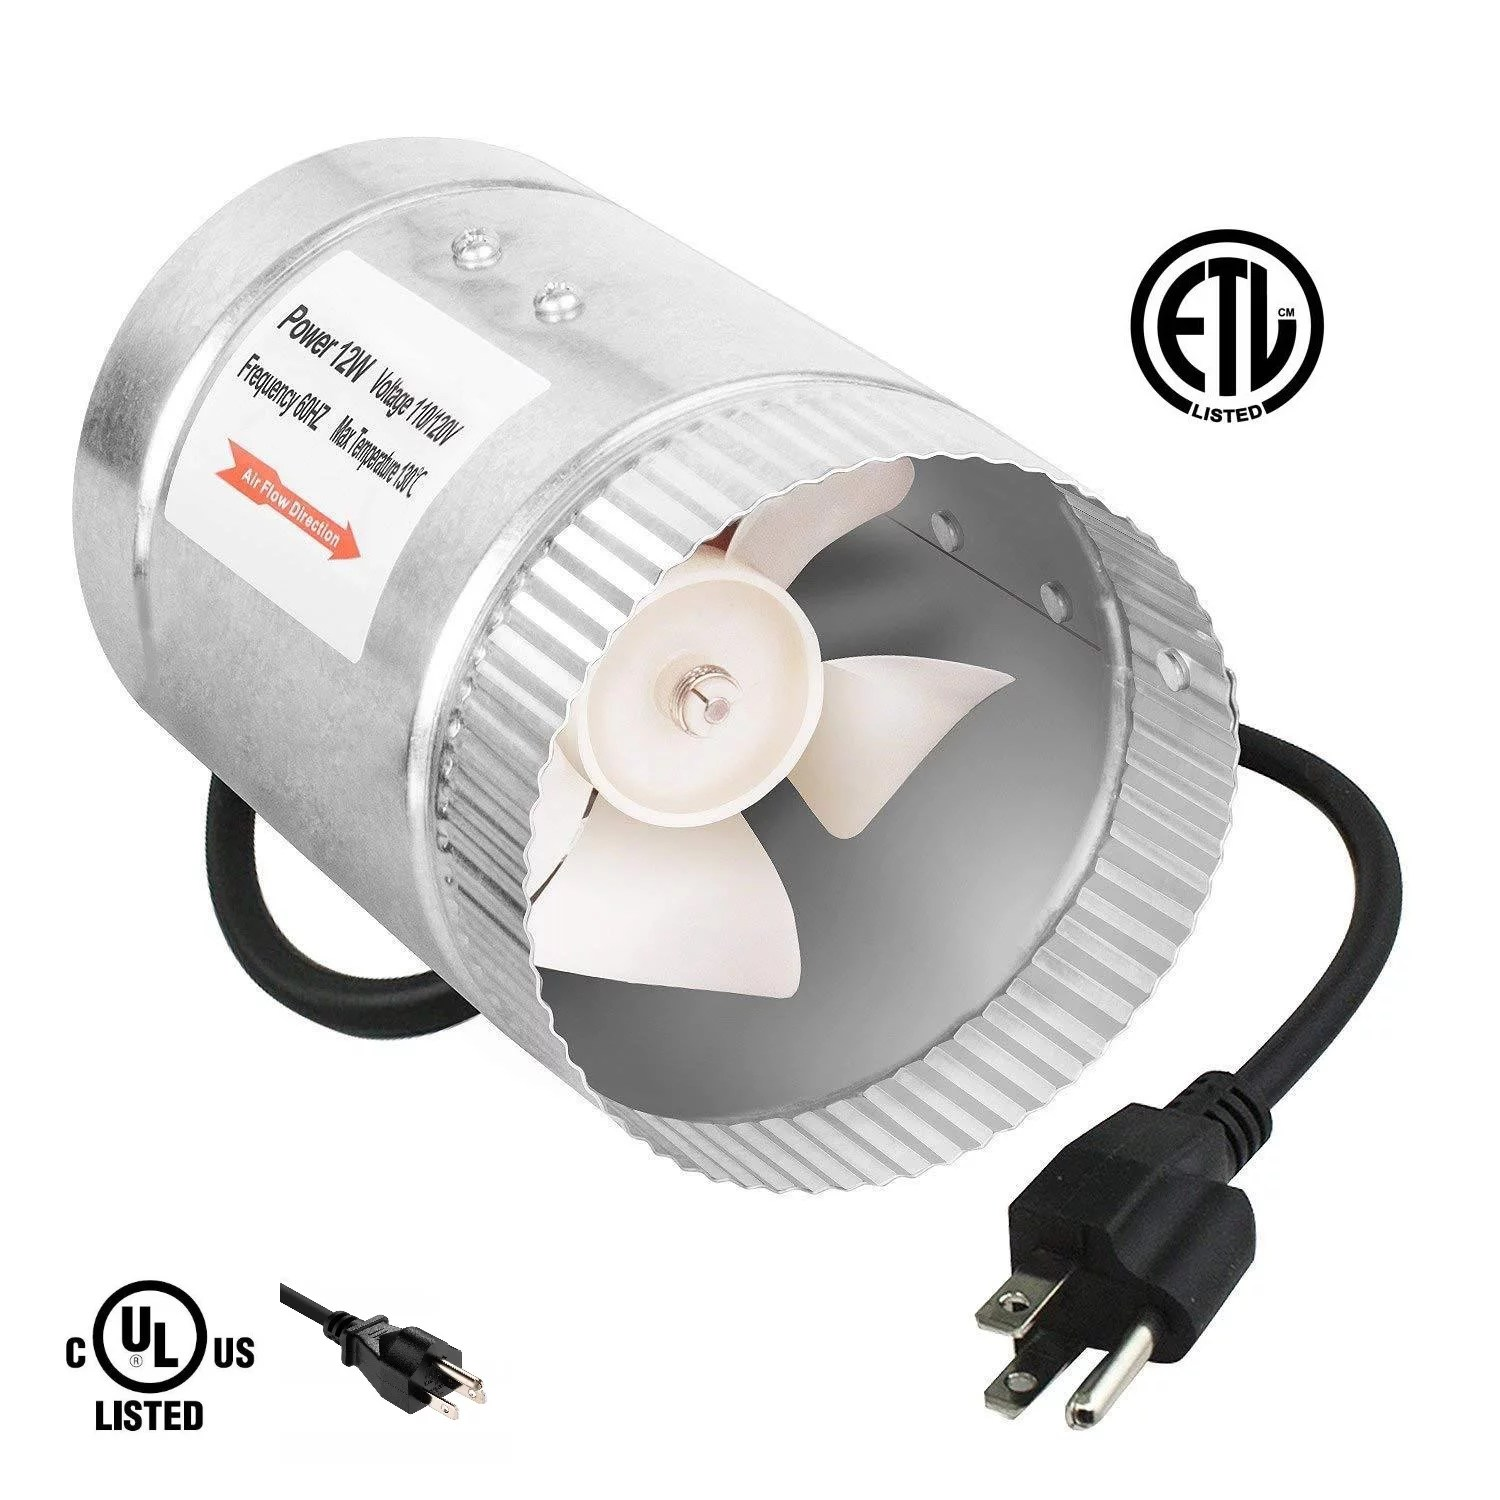 ipower 4 100 cfm booster fan inline duct vent blower for hvac exhaust and intake 5 5 grounded power cord walmart com